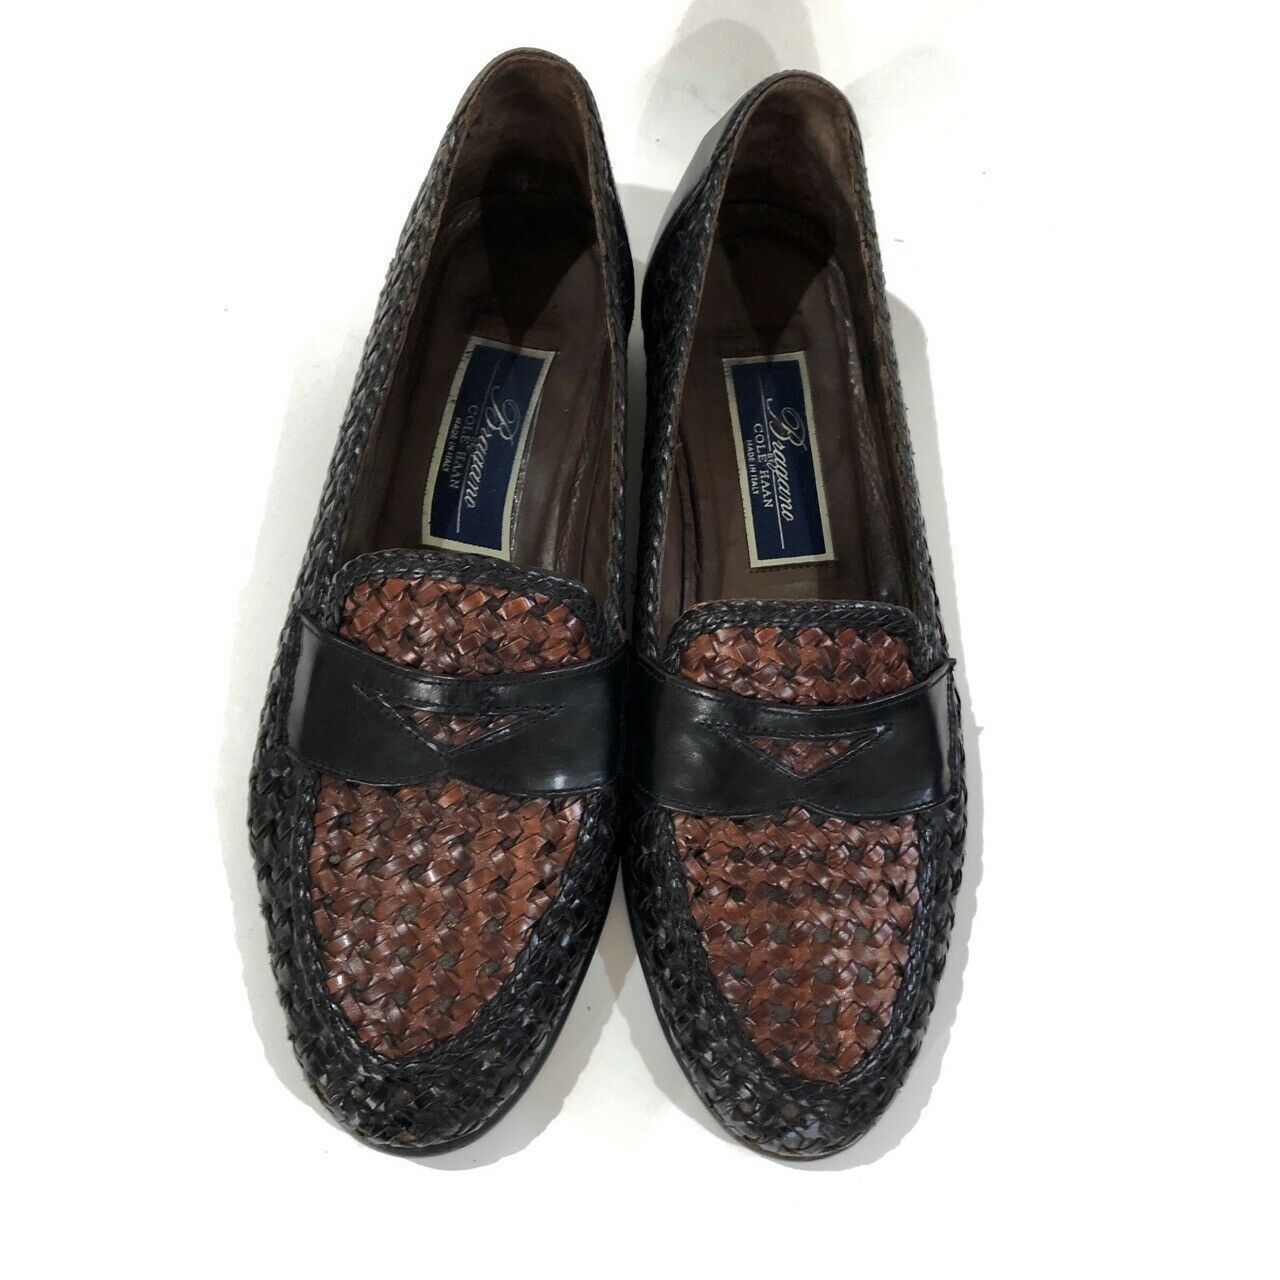 $180 COLE HAAN Bragano Brown Woven Leather Loafers Mens Size 7.5 | 283